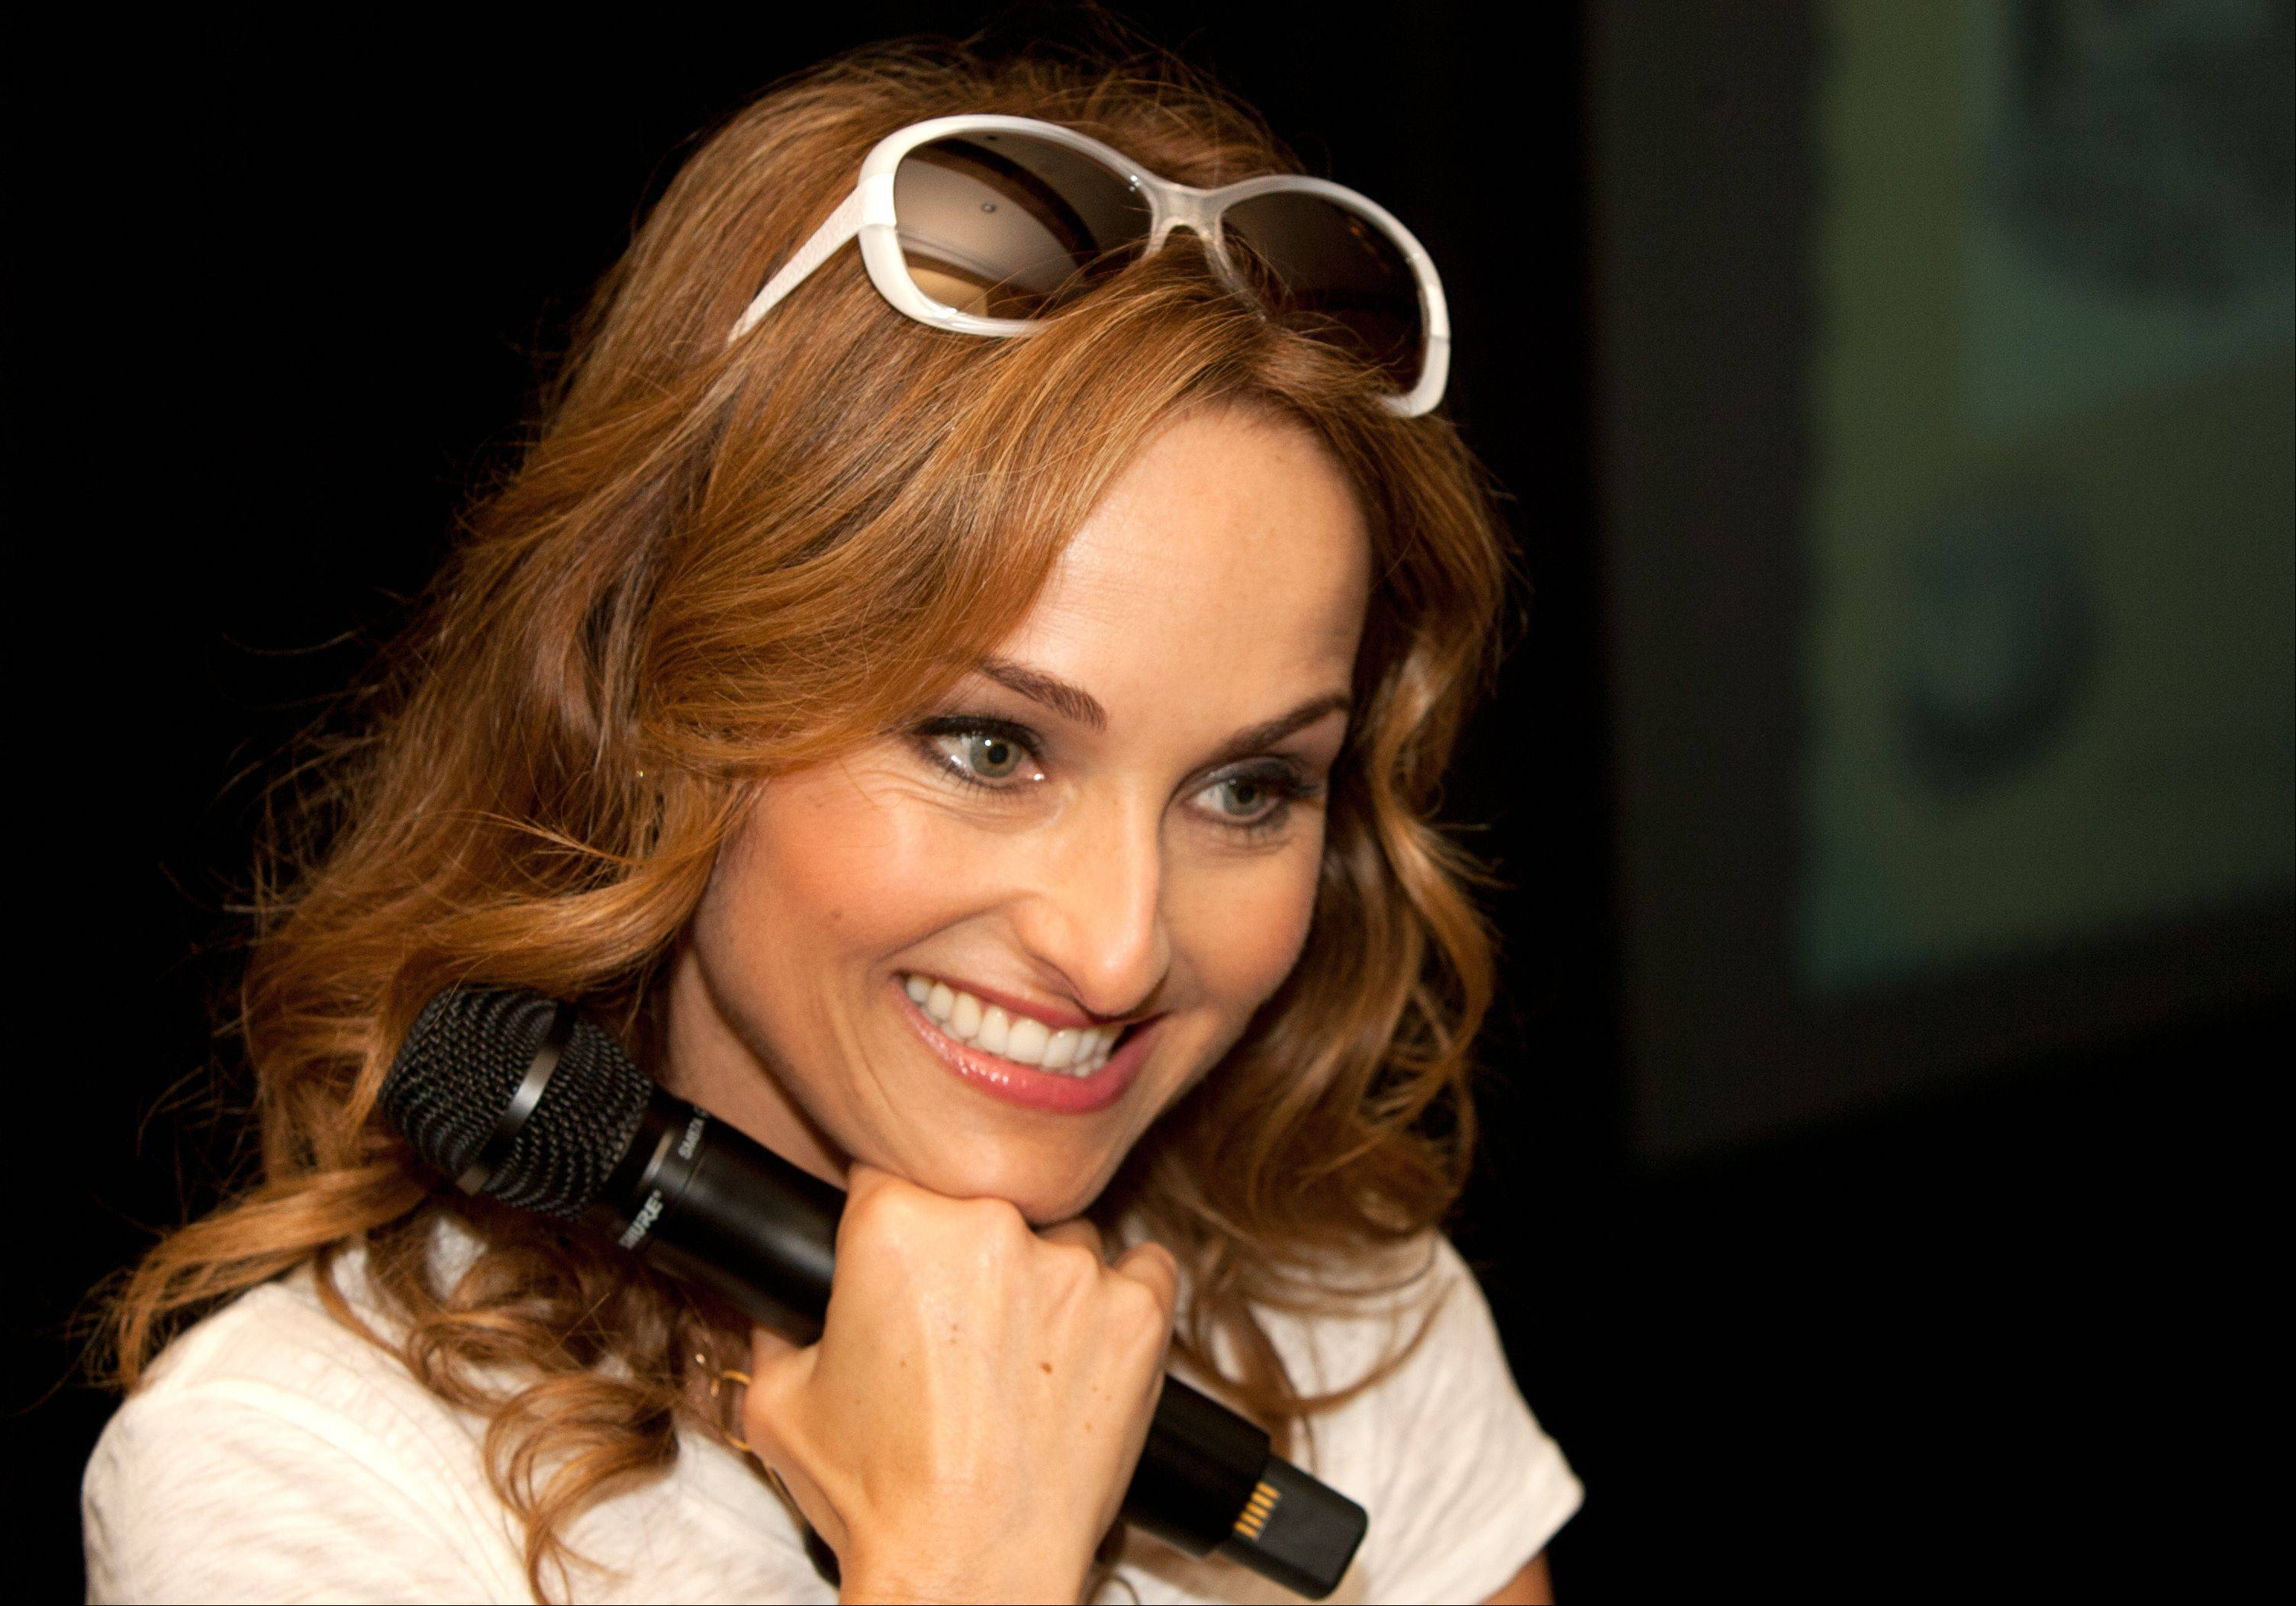 Celebrity chef and Food Network star Giada De Laurentiis made stops Tuesday at the White Eagle clubhouse in the Naperville and Aurora subdivision and at Pfeiffer Hall on North Central College's campus in downtown Naperville.